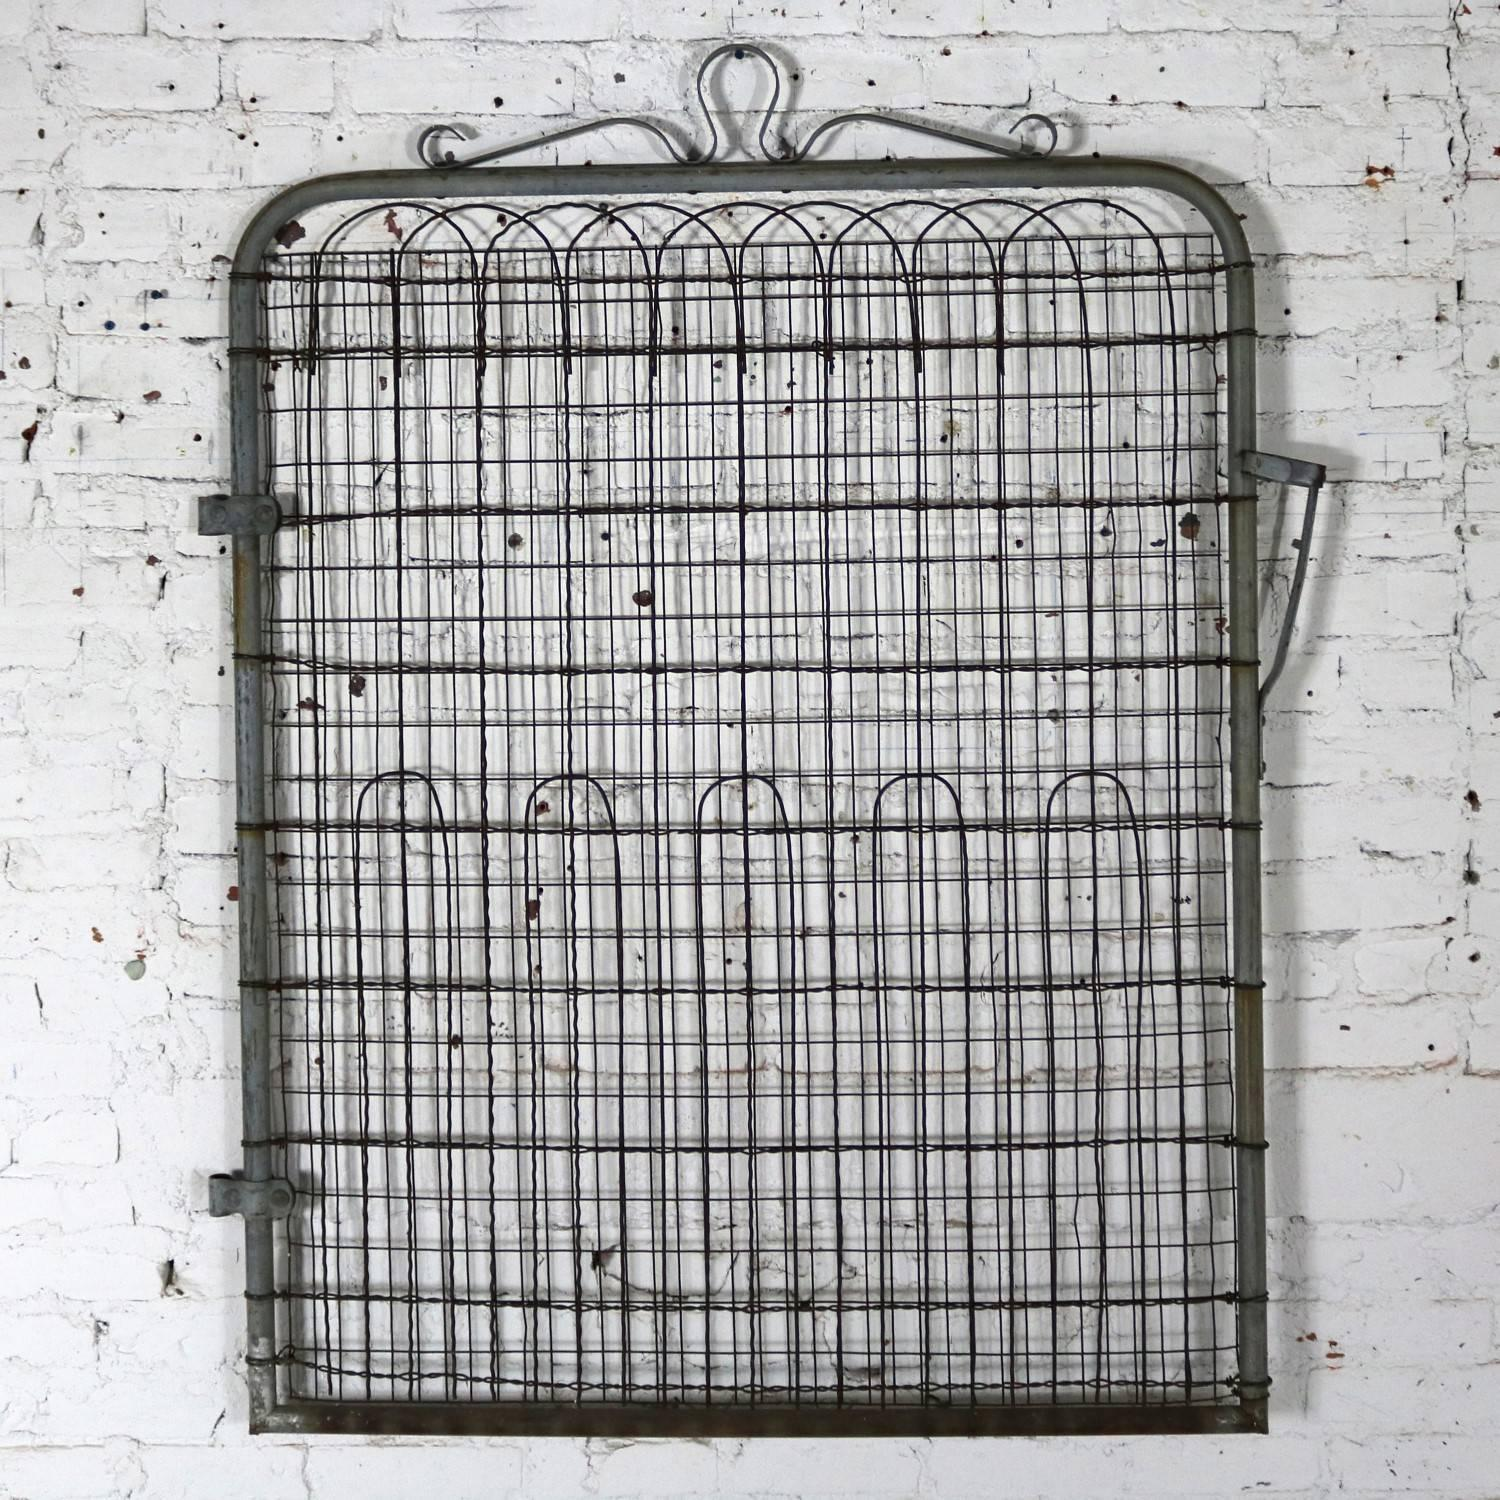 Quaint Vintage Woven Wire Cottage Style Garden Gate Of Galvanized Metal And  Wire With Lots Of